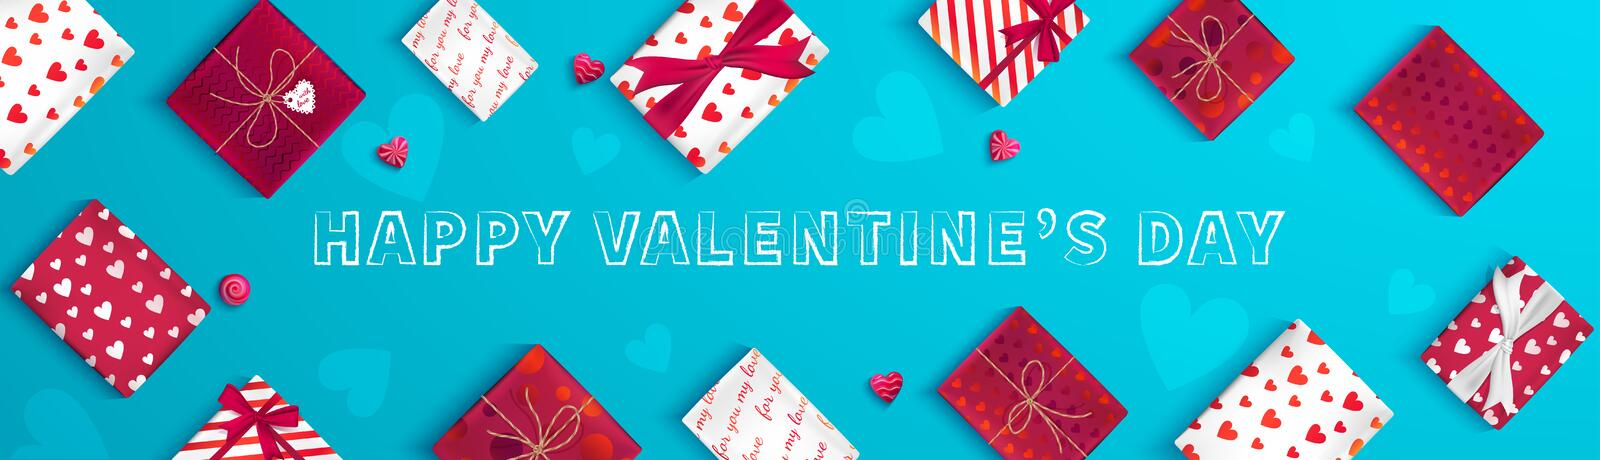 Happy Valentine`s Day greeting banner. Top view on gift boxes in different packaging, candy in the form of heart. vector illustration